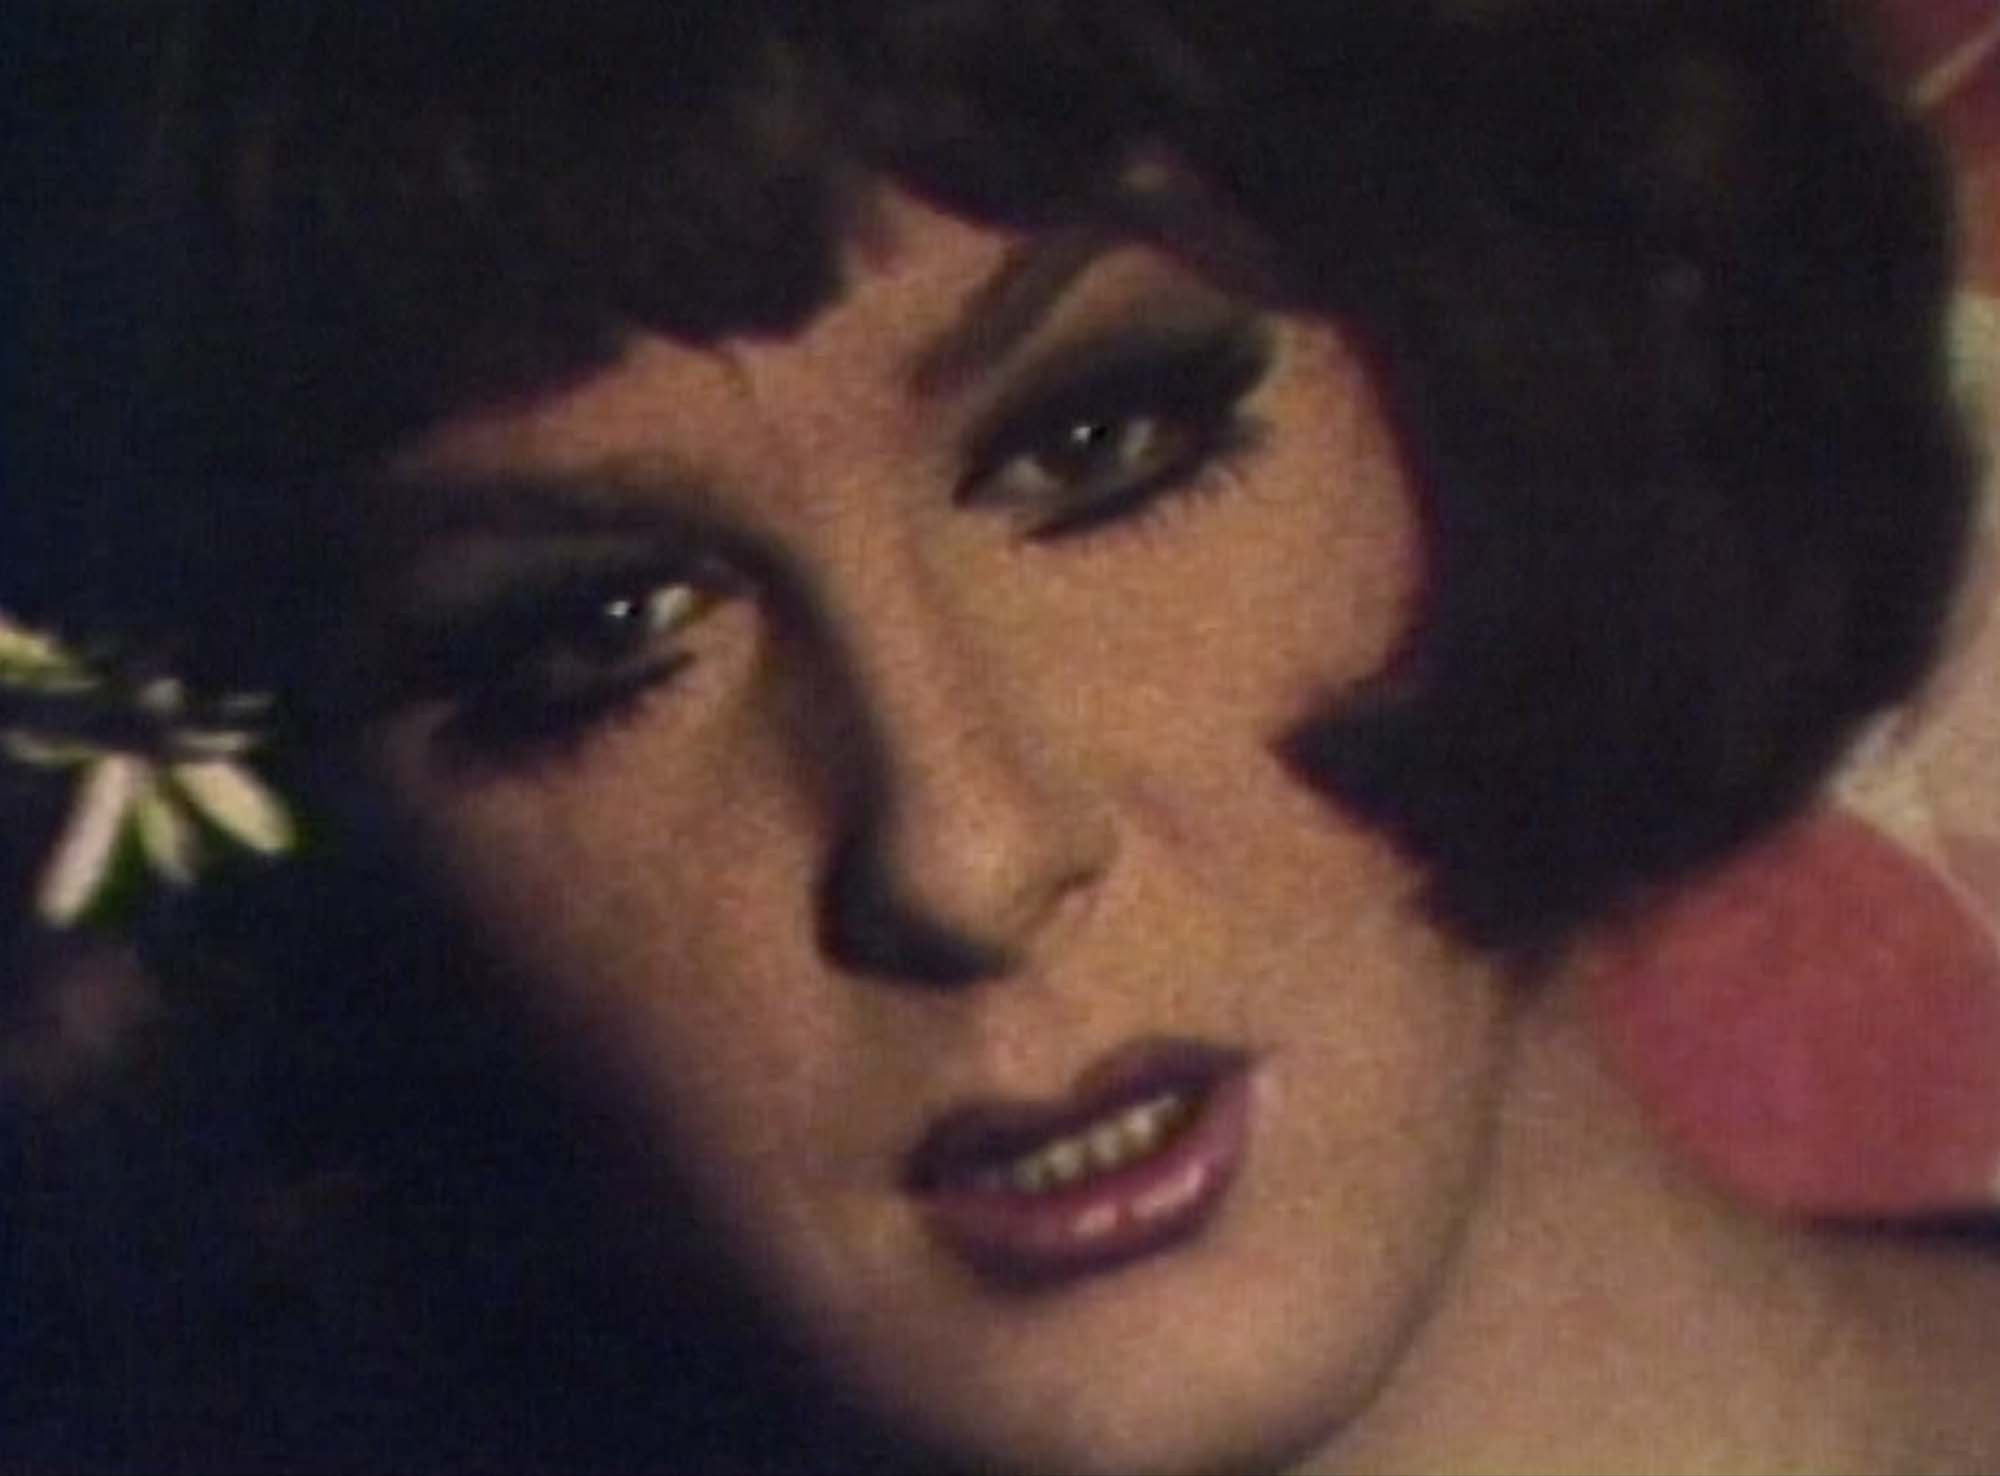 """Tom Rubnitz, """"Wigstock : The Movie"""" (1987). Image copyright of the artist, courtesy of Video Data Bank, www.vdb.org, School of the Art Institute of Chicago"""